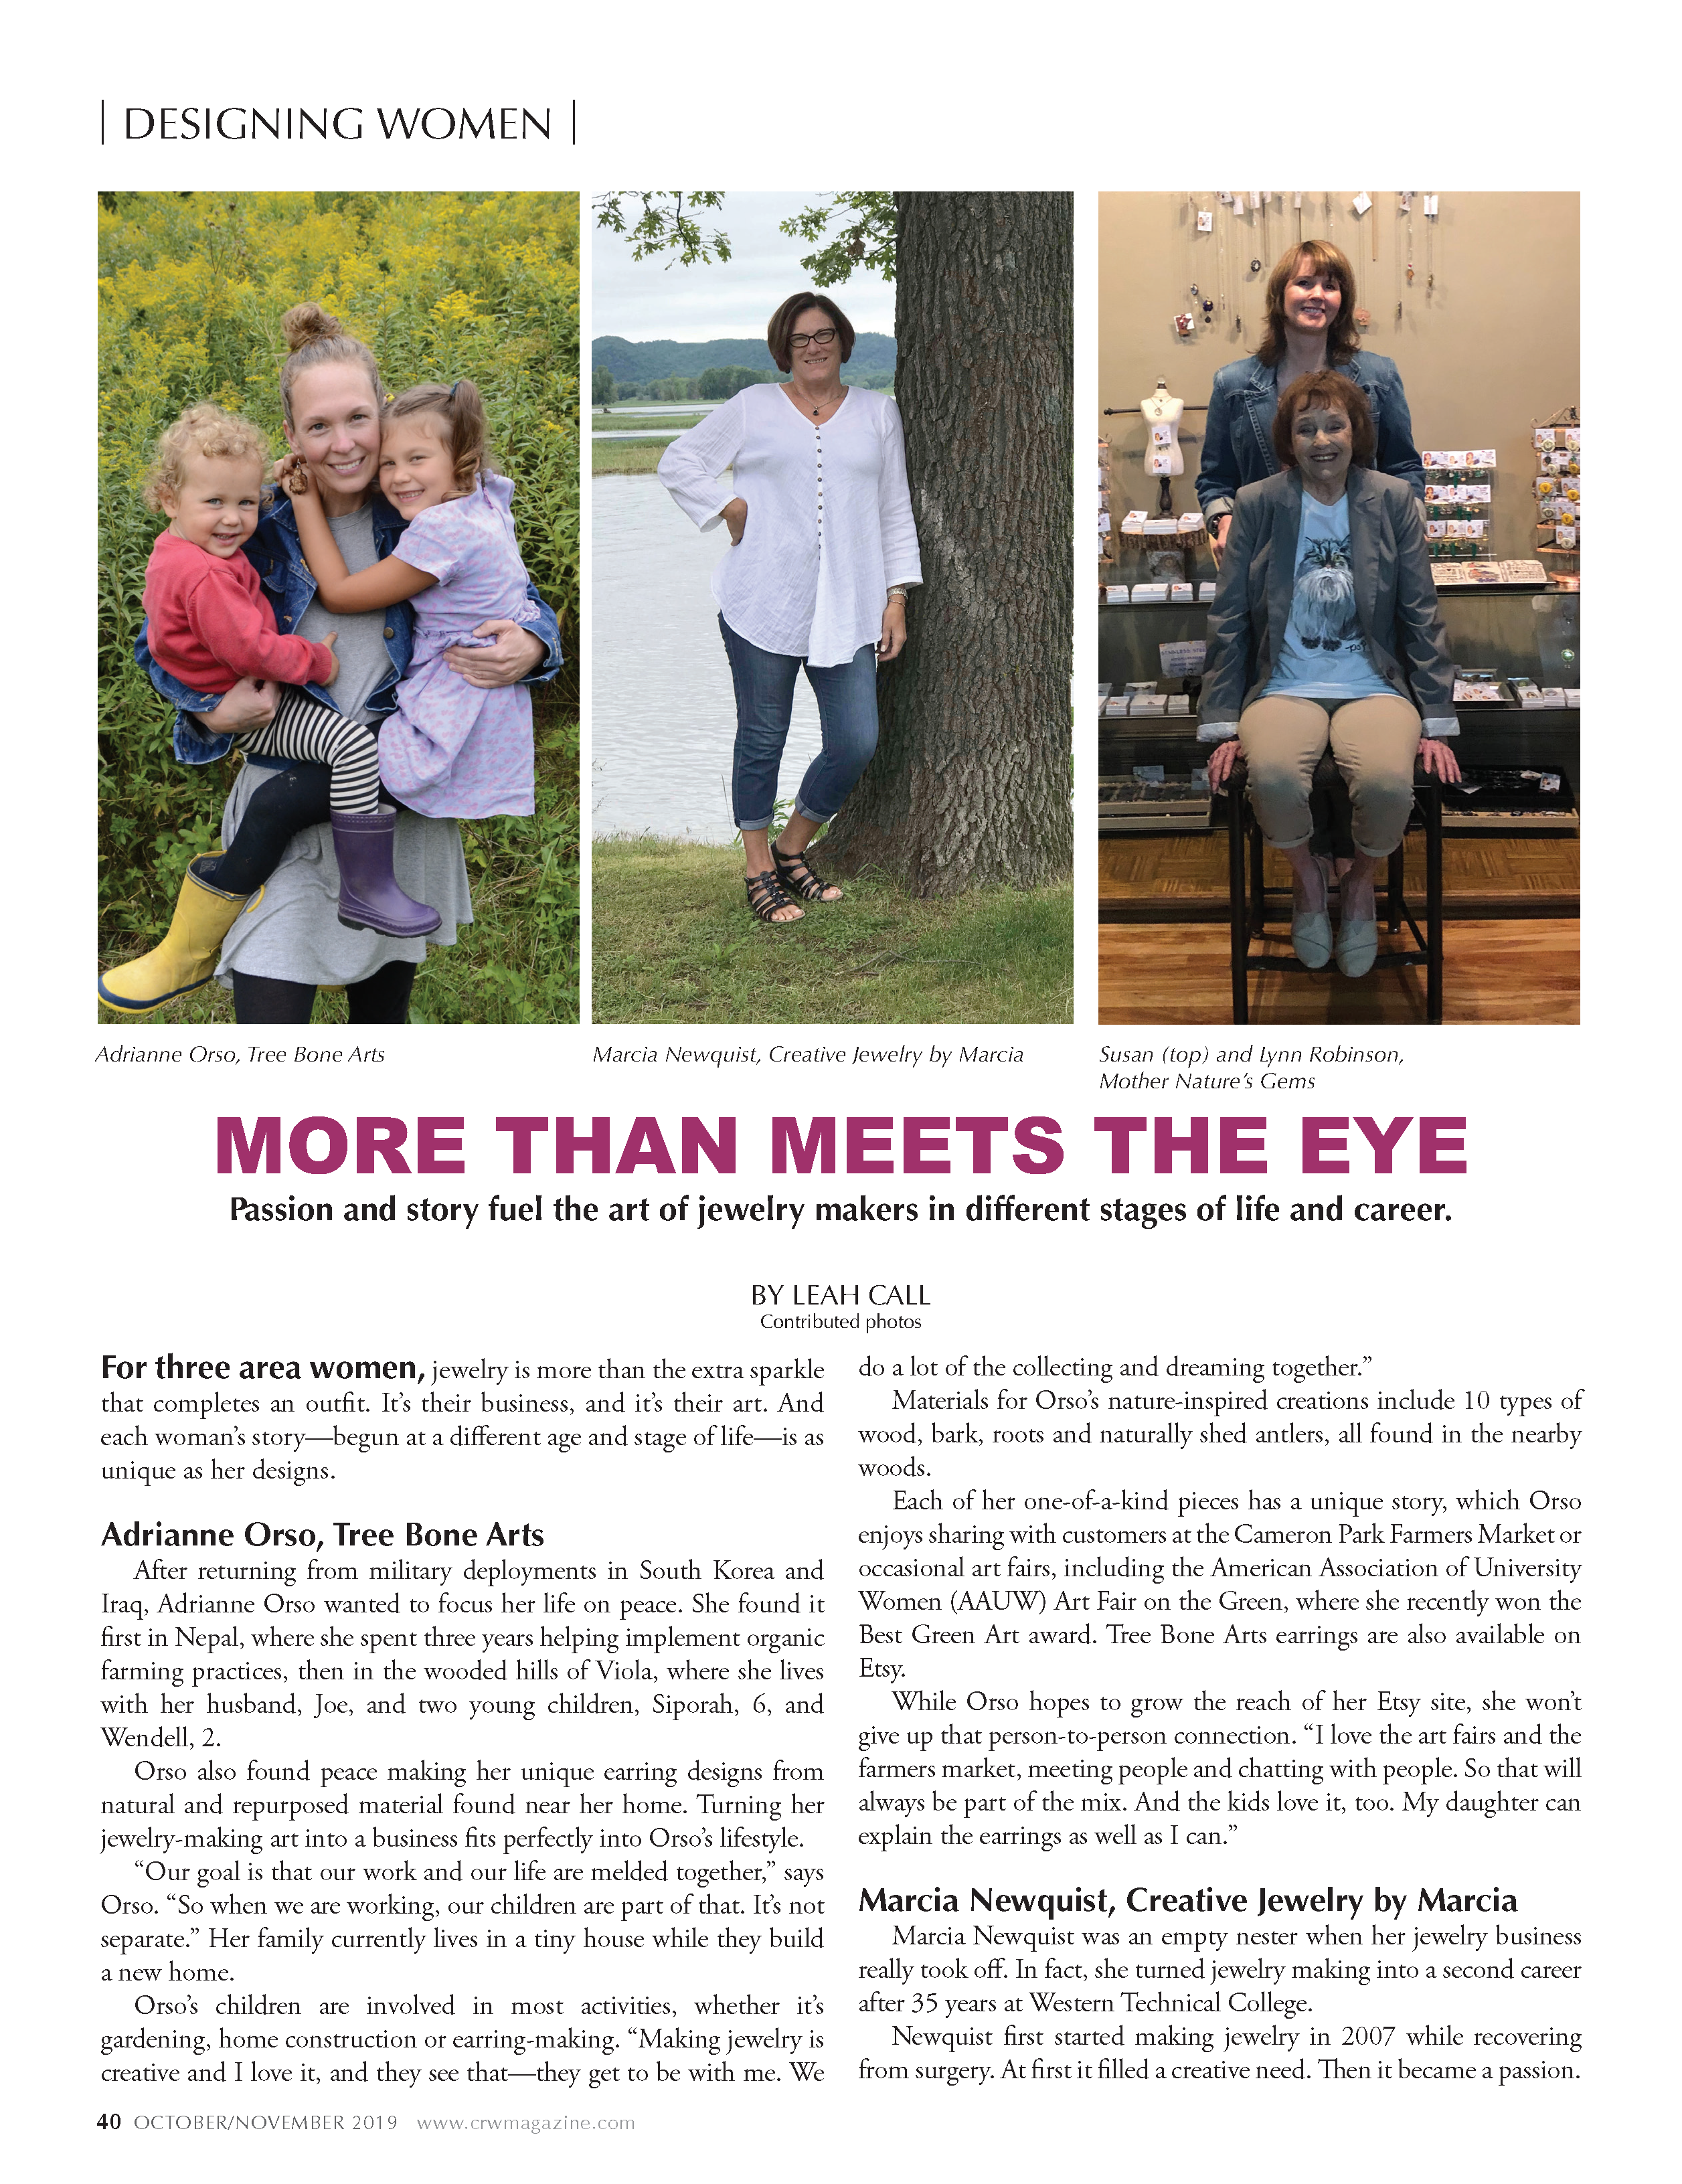 Coulee Women Magazine Article (Local Magazine - La Crosse, WI) Creative Jewelry by Marcia (Marcia Newquist) was featured as a local artist.